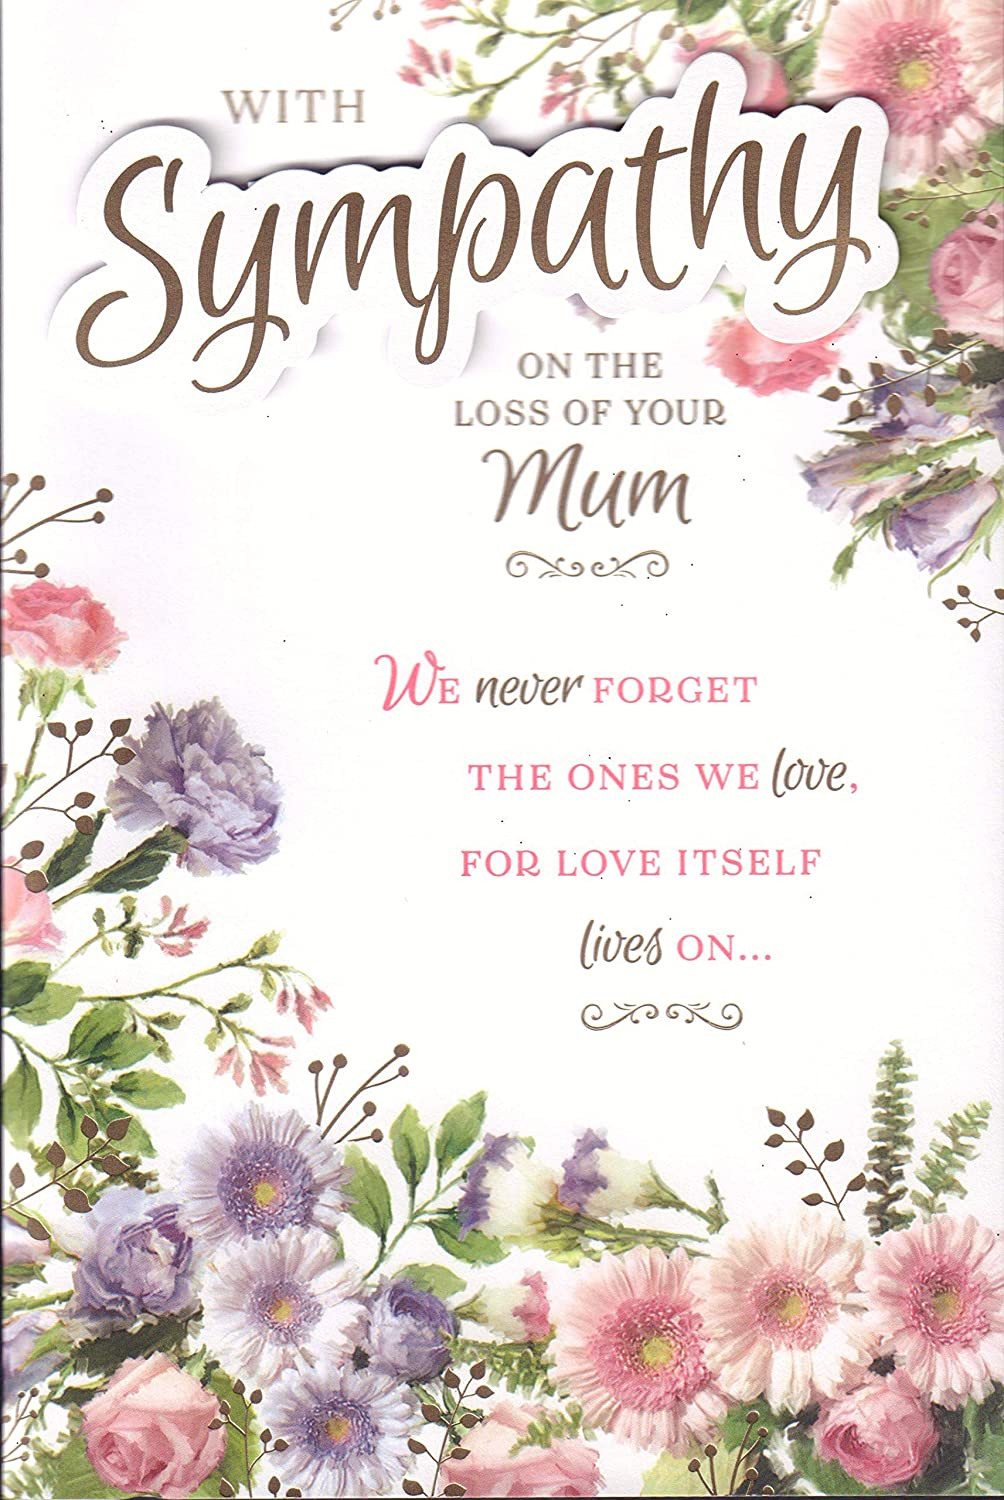 Loss Of Your Mum Sympathy Card With Sympathy On The Loss Of Mum 8 Page Condolence Death Card Amazon Co Uk Garden Outdoors